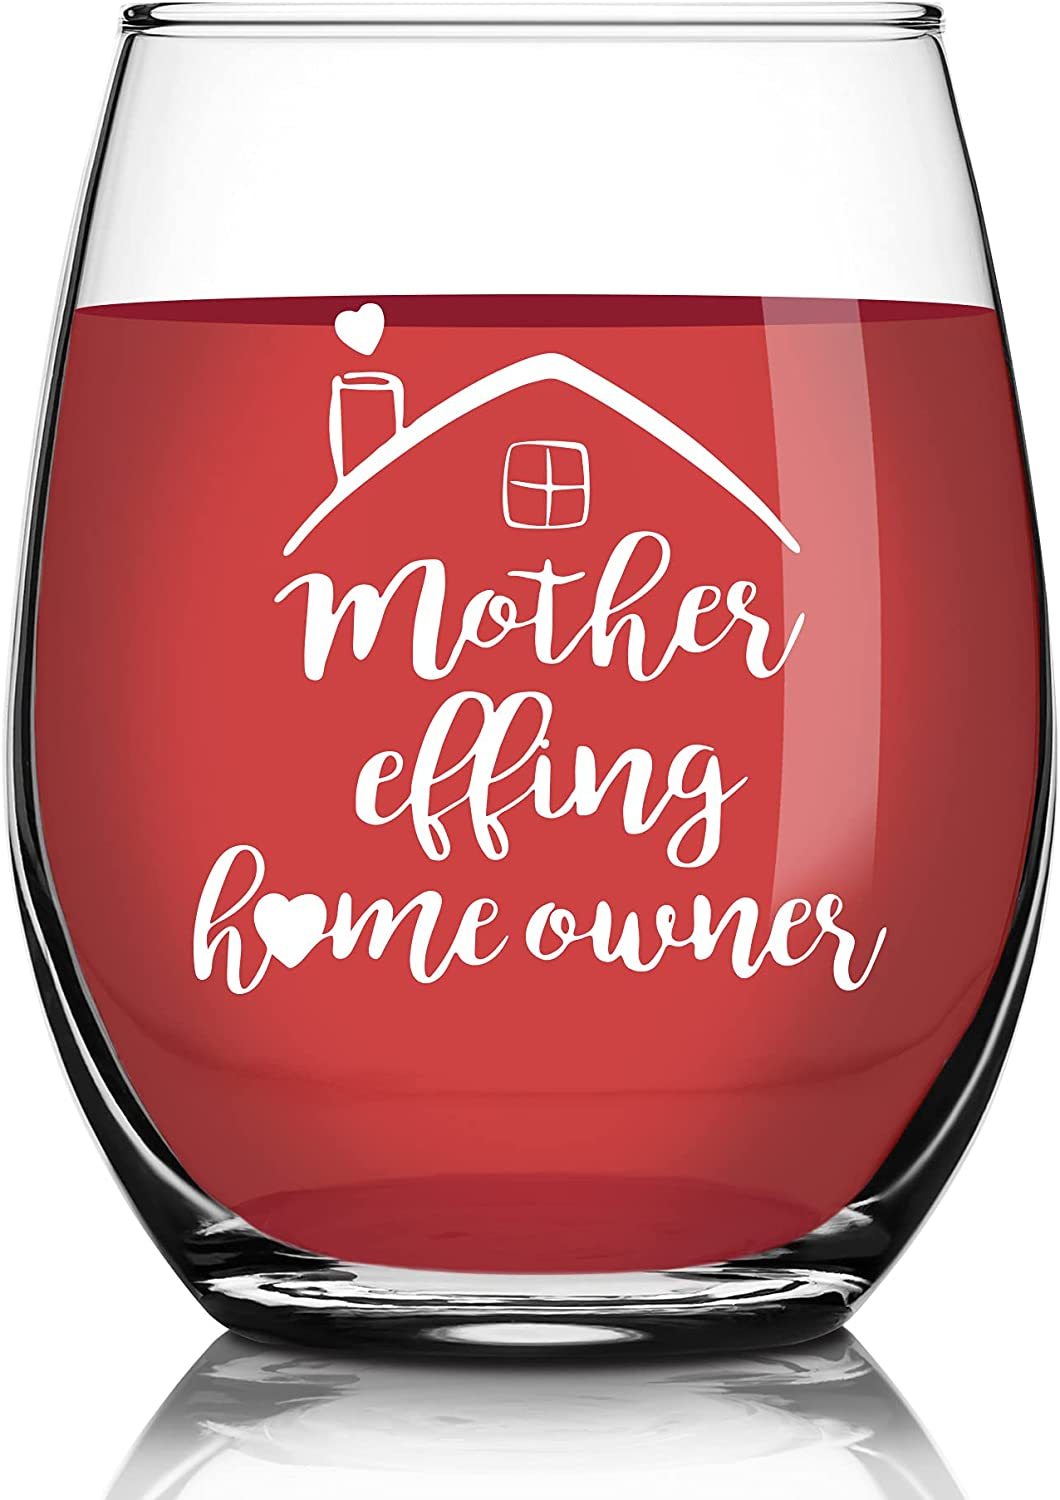 Housewarming Gifts, Unique Gift for First Time Homeowner, Funny First time Home Buyer Gifts Ideas, Mother Effing Homeowner - Personalized House Owner Gift - 15 oz Stemless Wine Glass for Women, Men